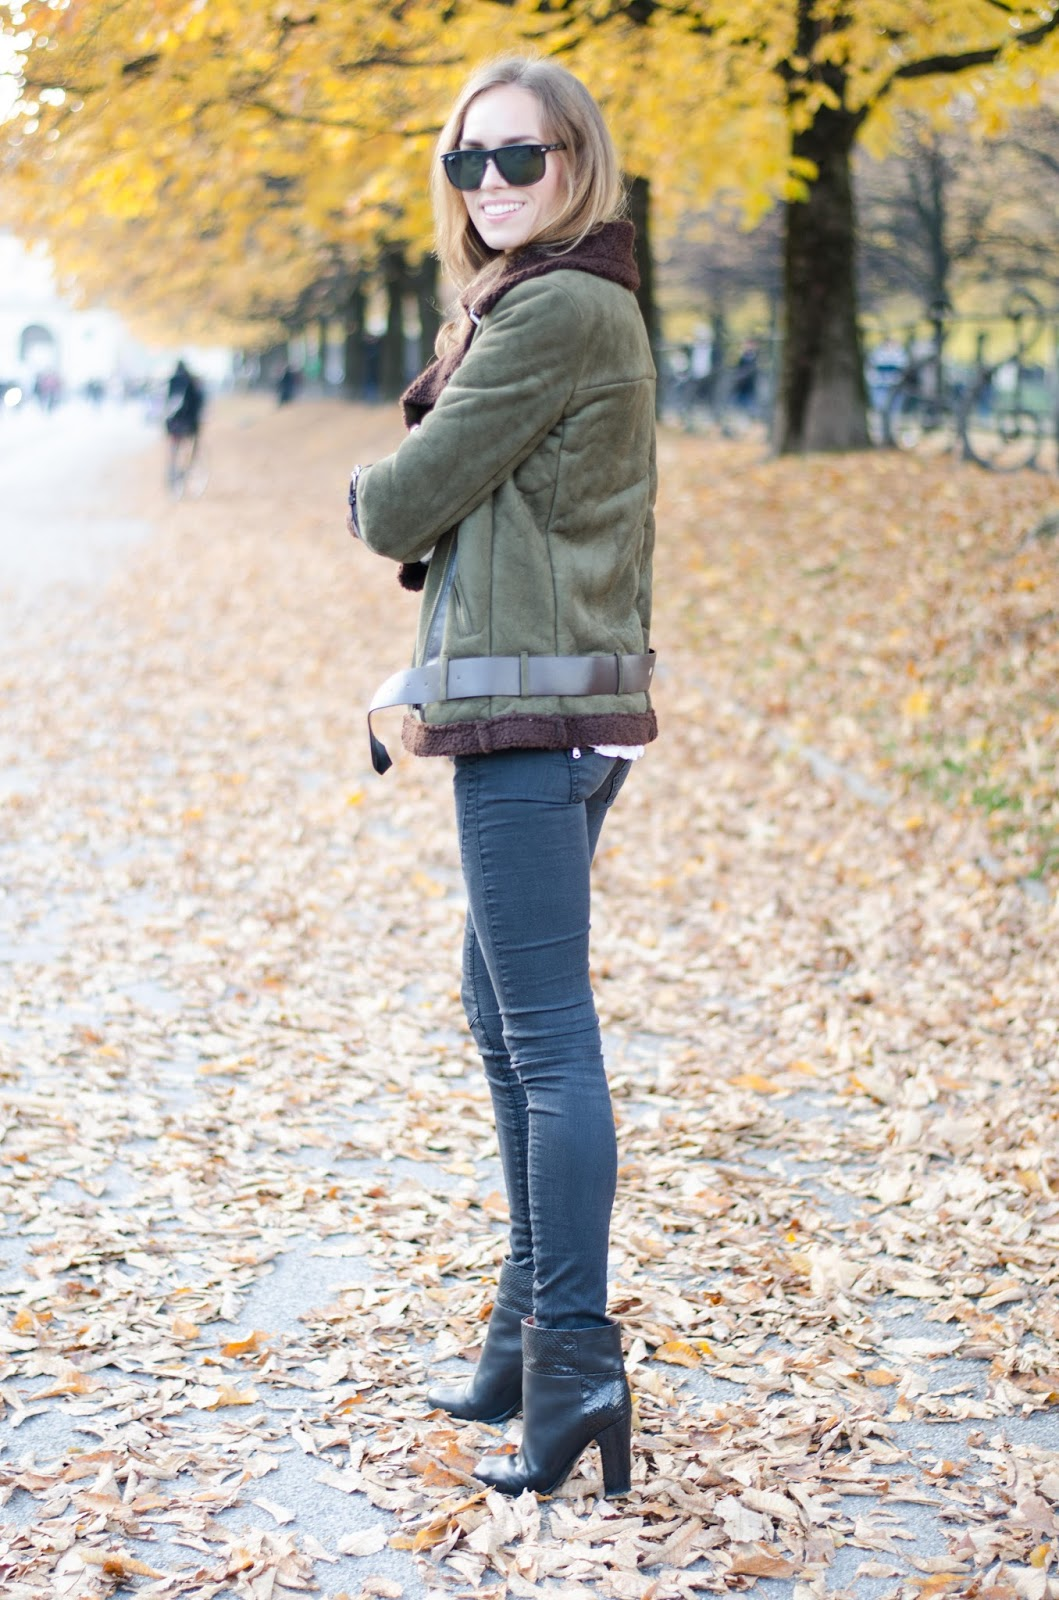 kristjaana mere green brown shearling jacket black skinny jeans ankle boots fall outfit fashion